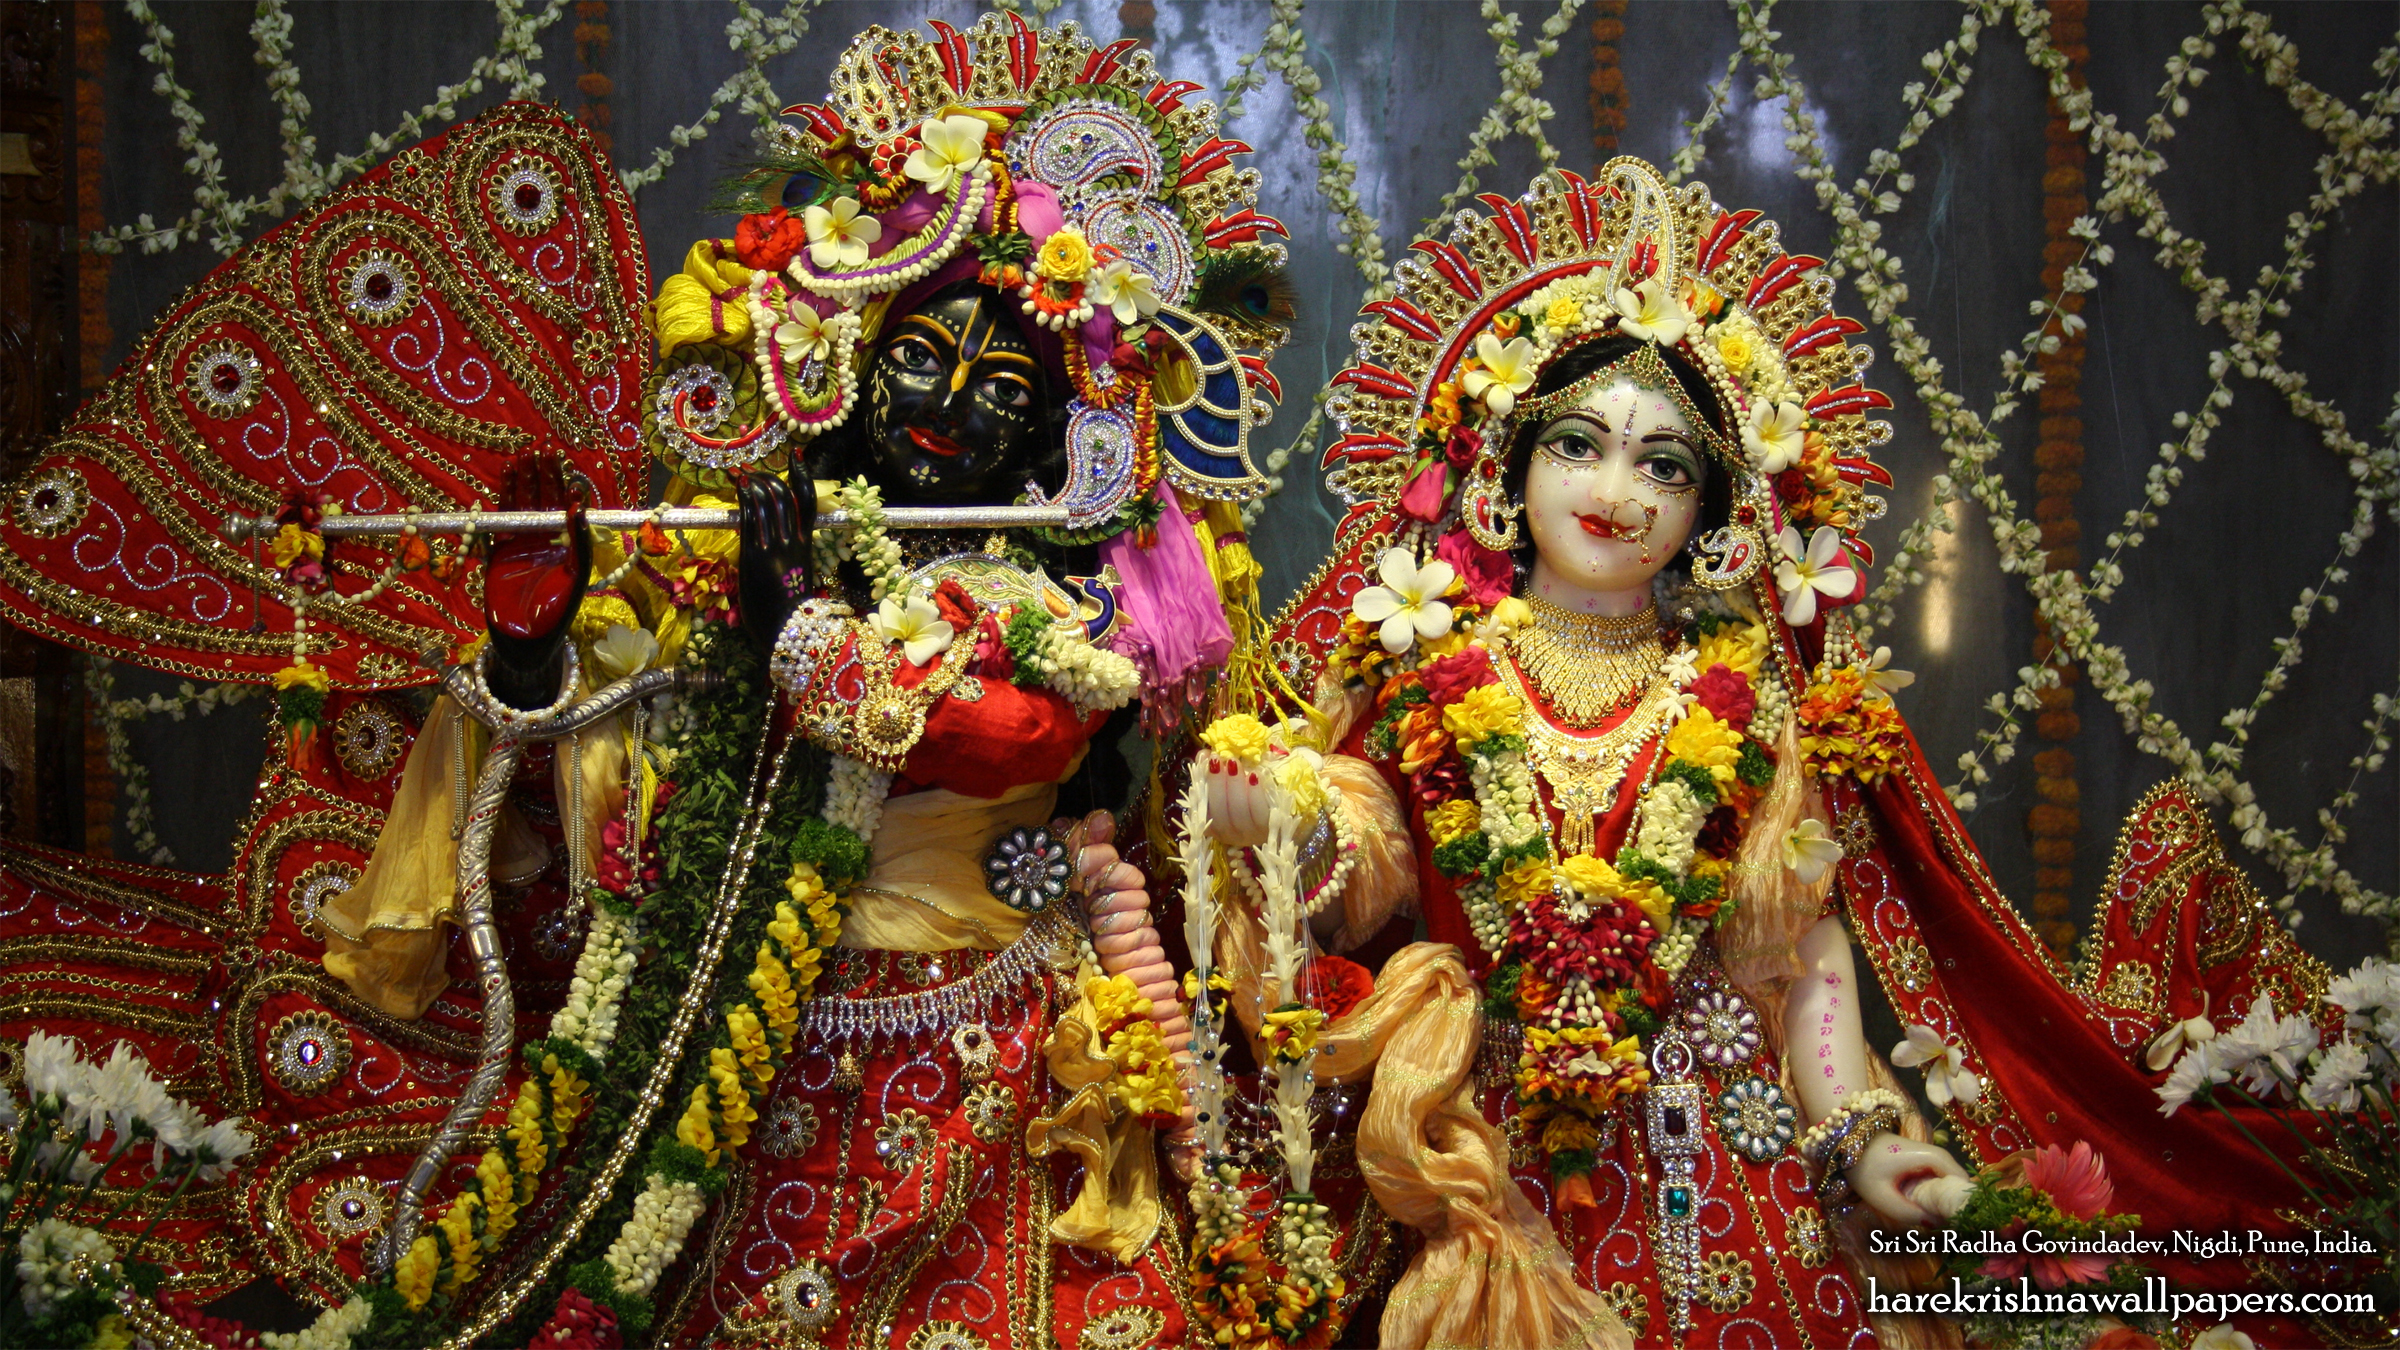 Sri Sri Radha Govind Close up Wallpaper (003) Size 2400x1350 Download